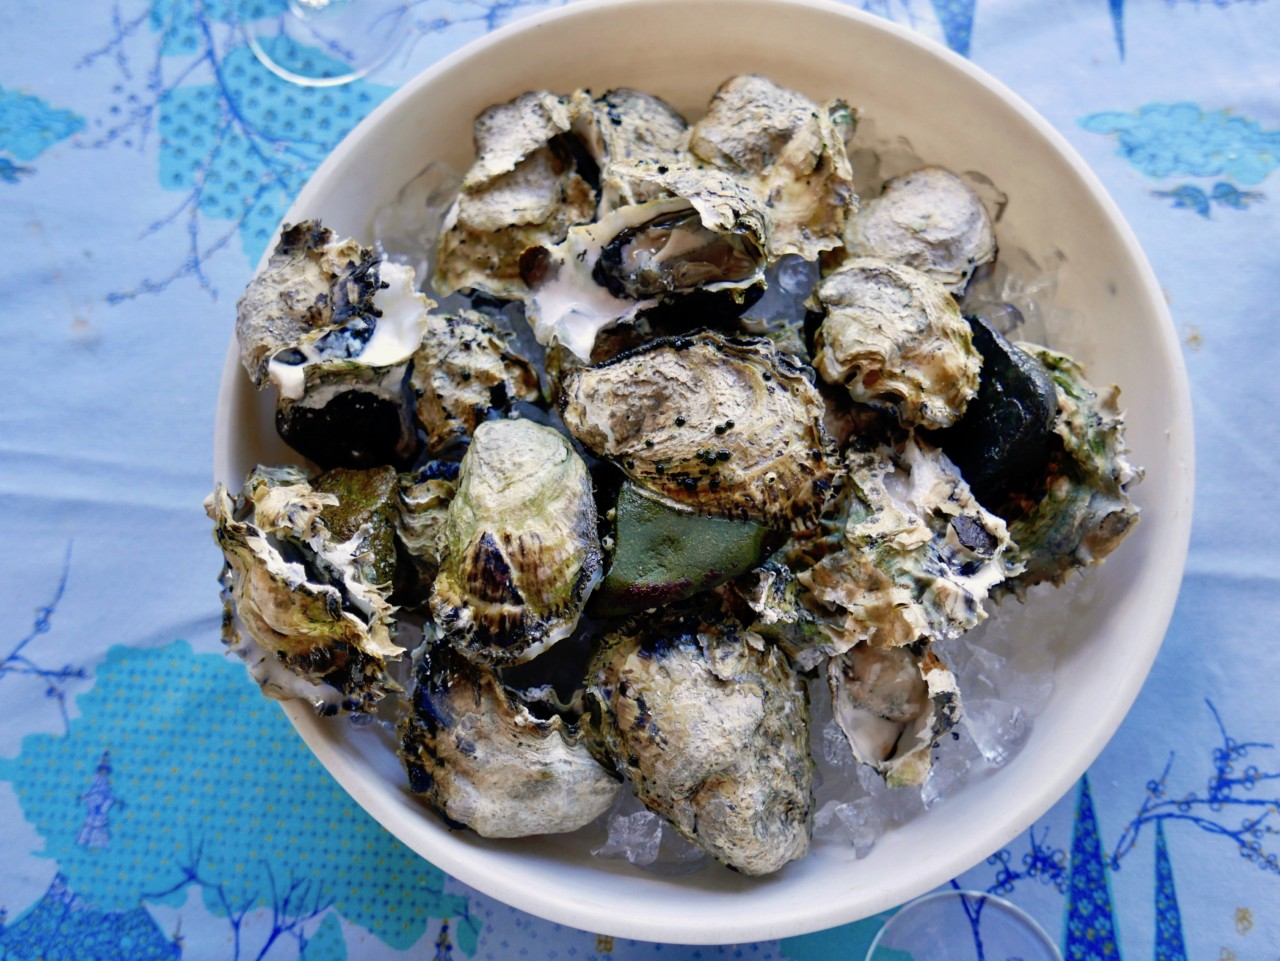 osters-oysters-havets-frukter-wiinblad-nesodden-green-house-anja-stang